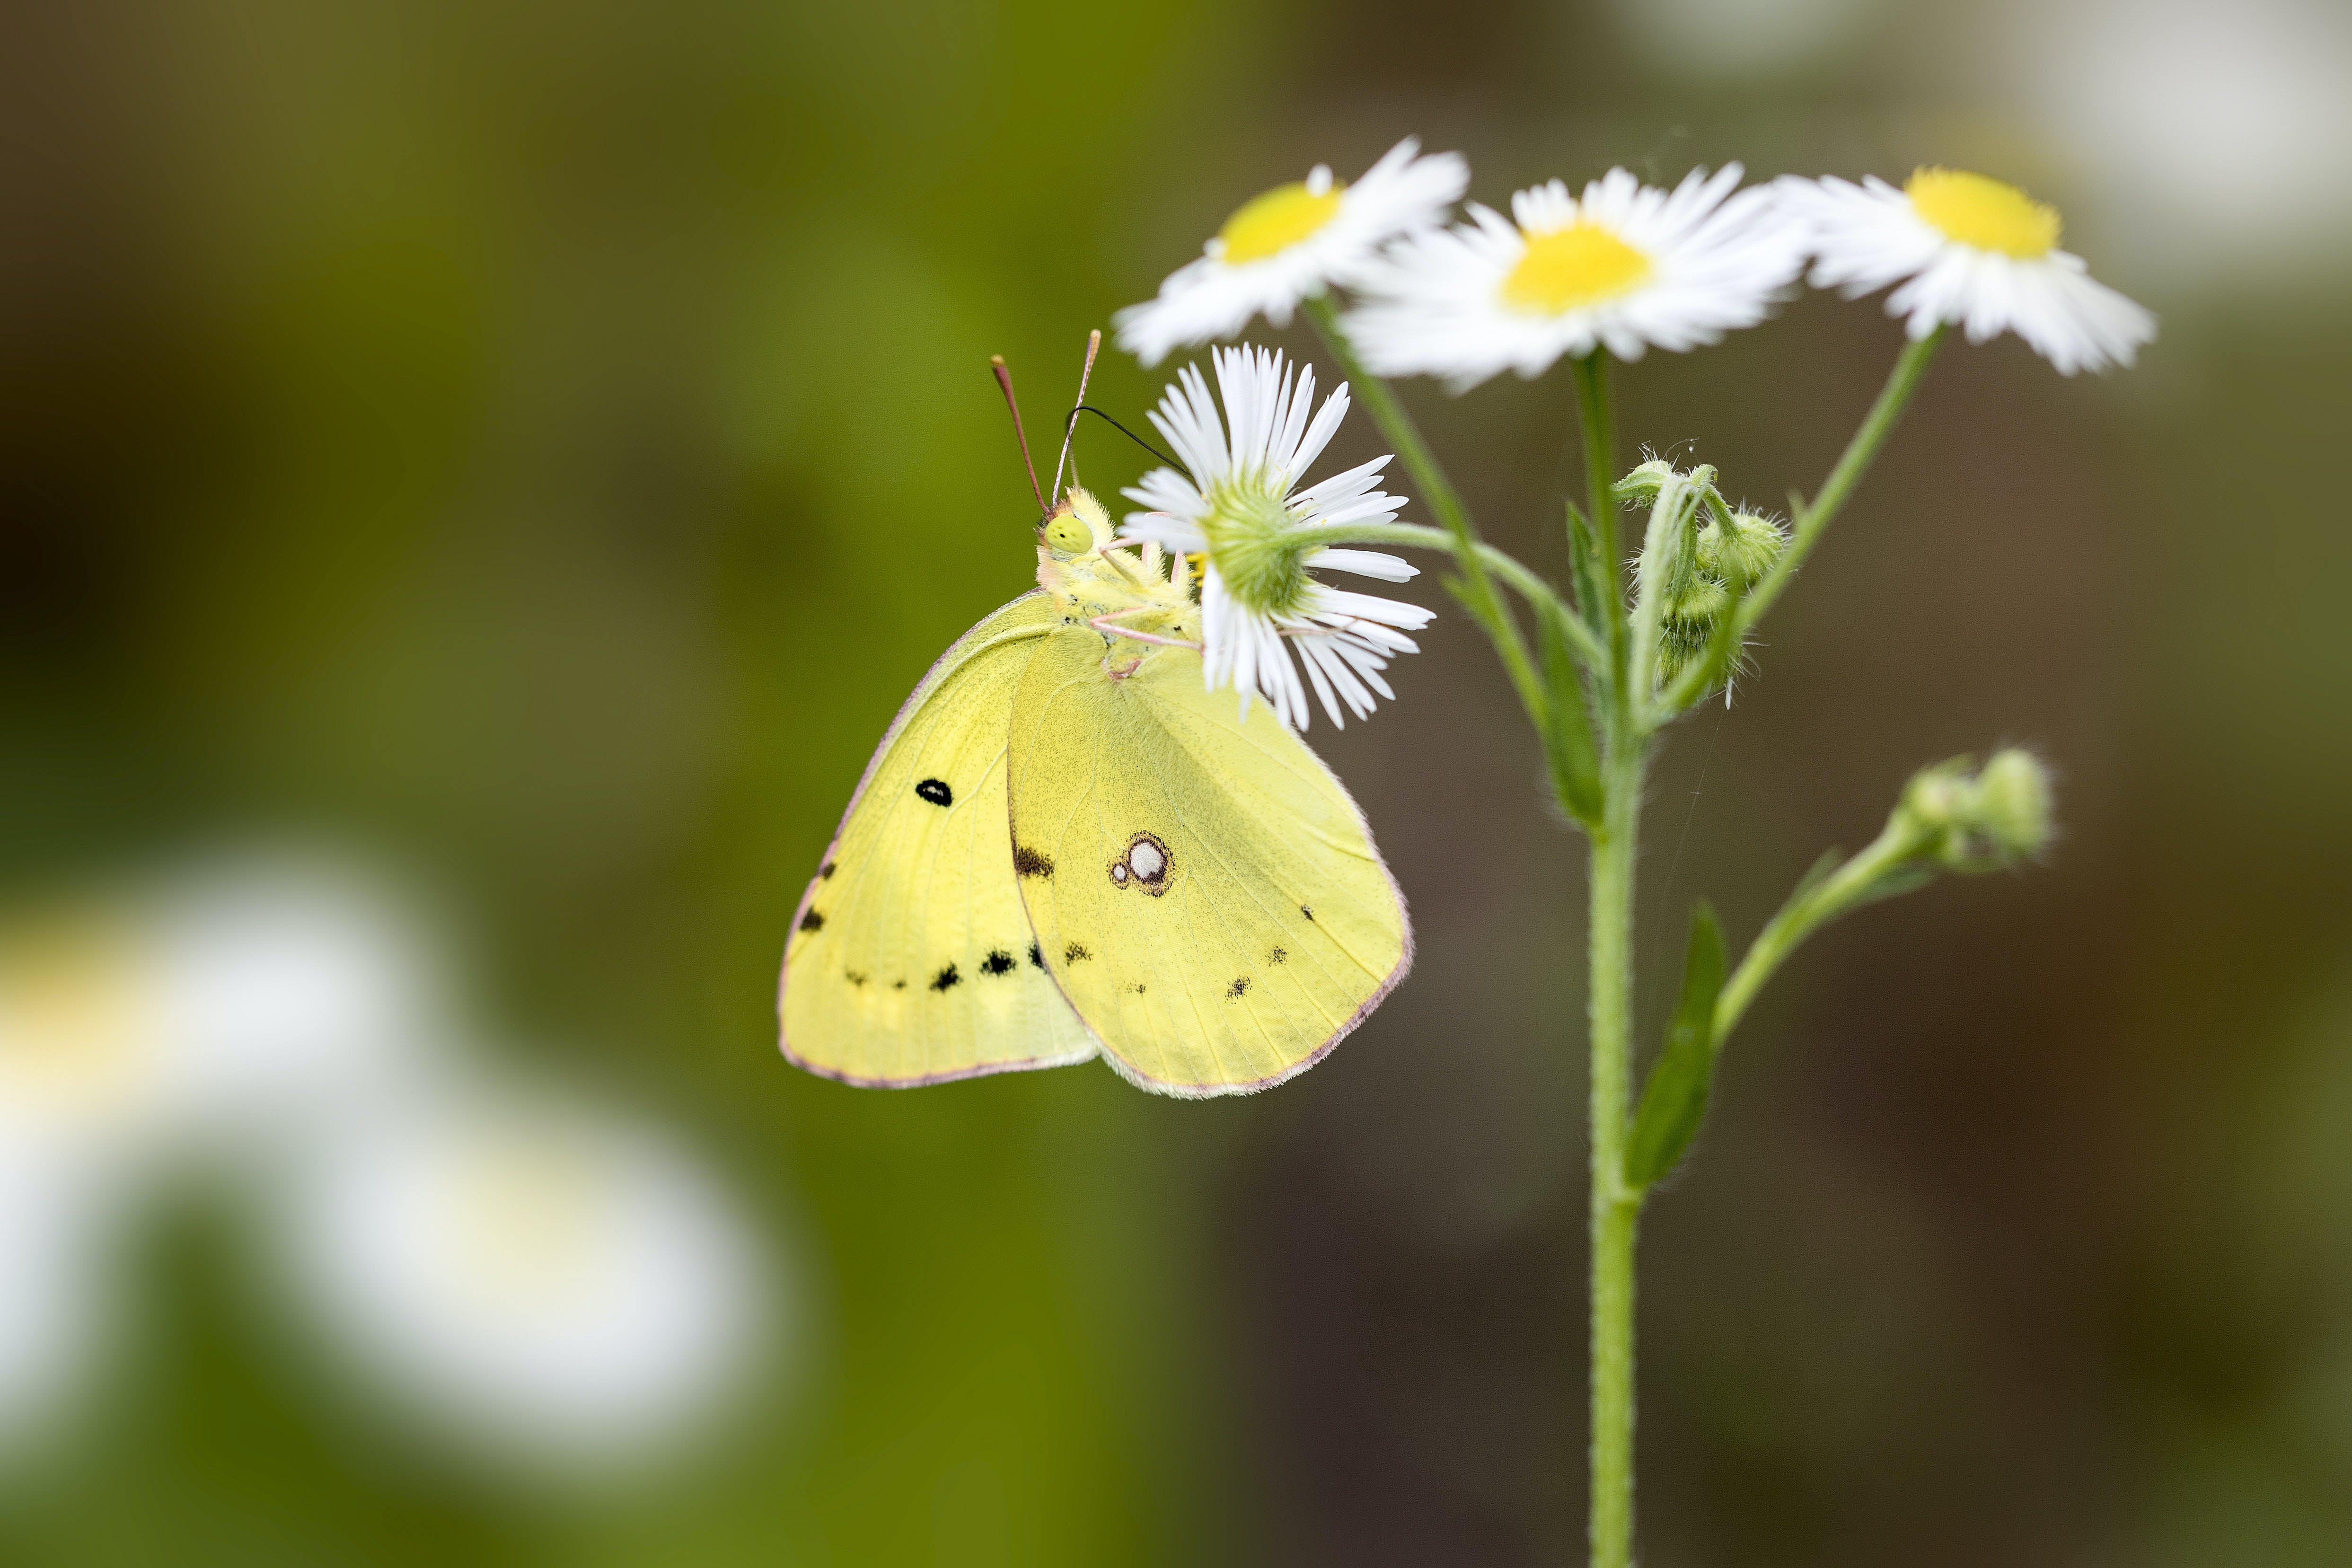 Free stock photo of butterfly on a flower